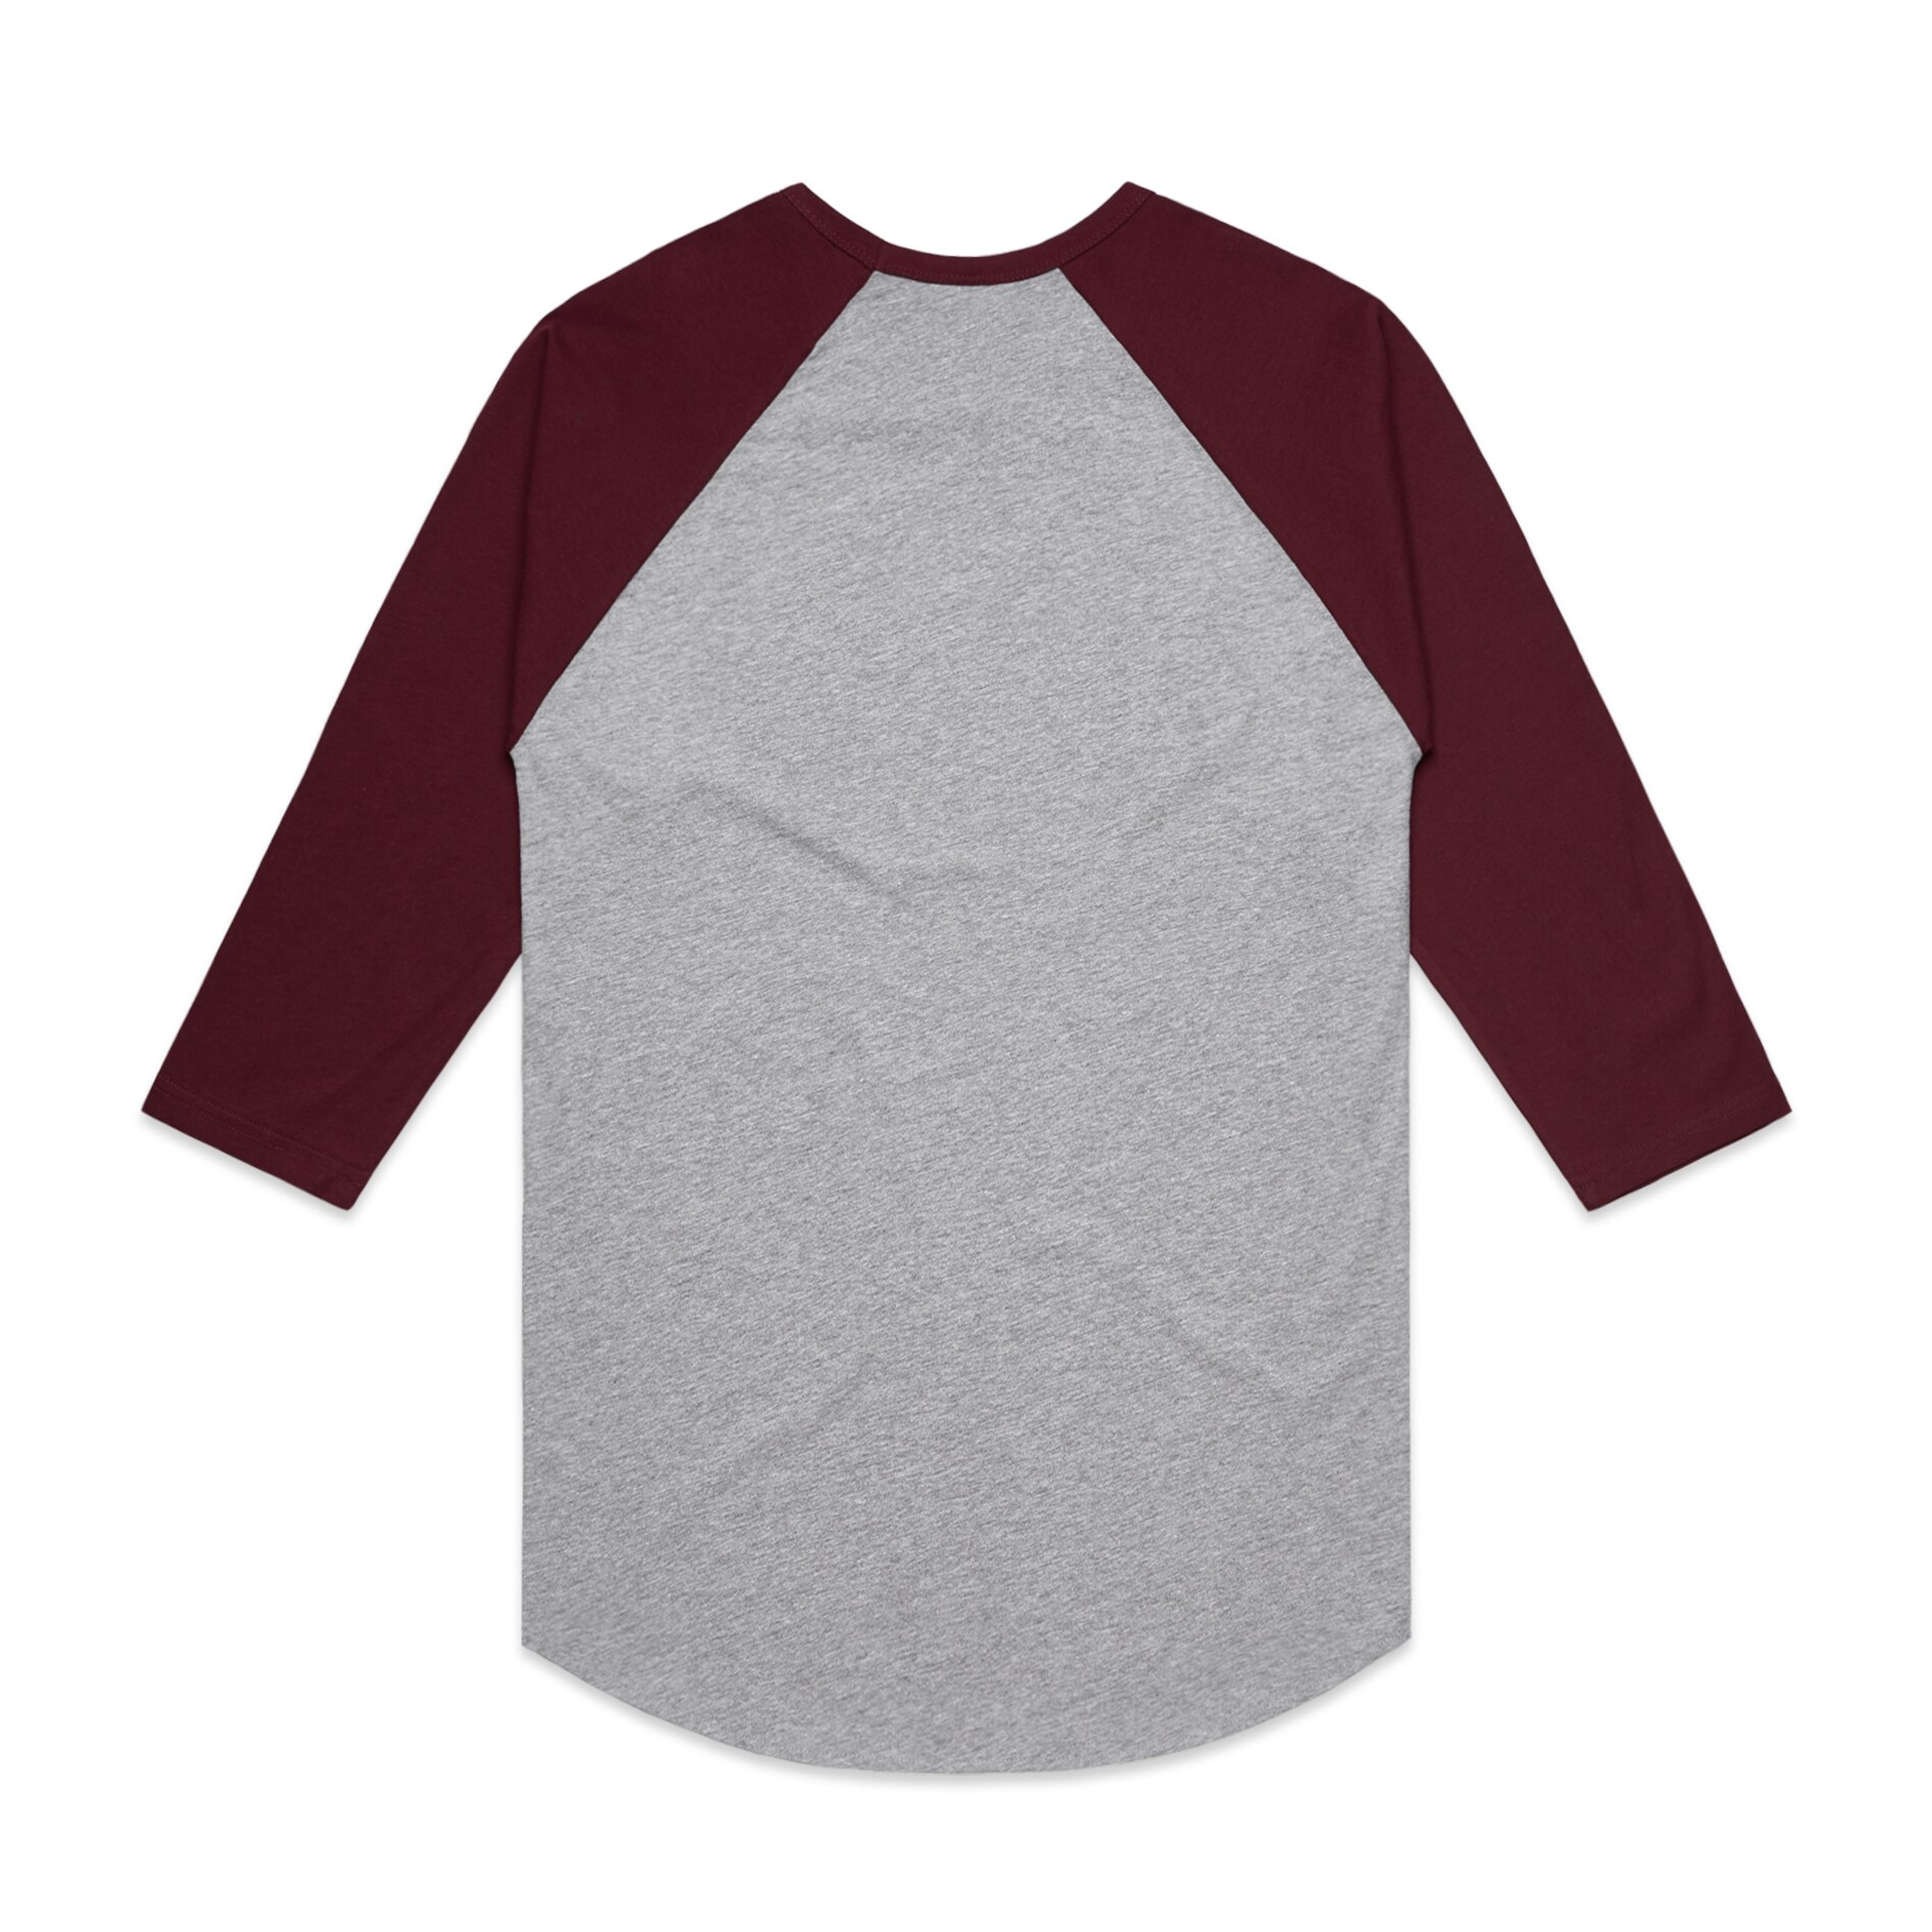 GREY MARLE/BURGUNDY - BACK